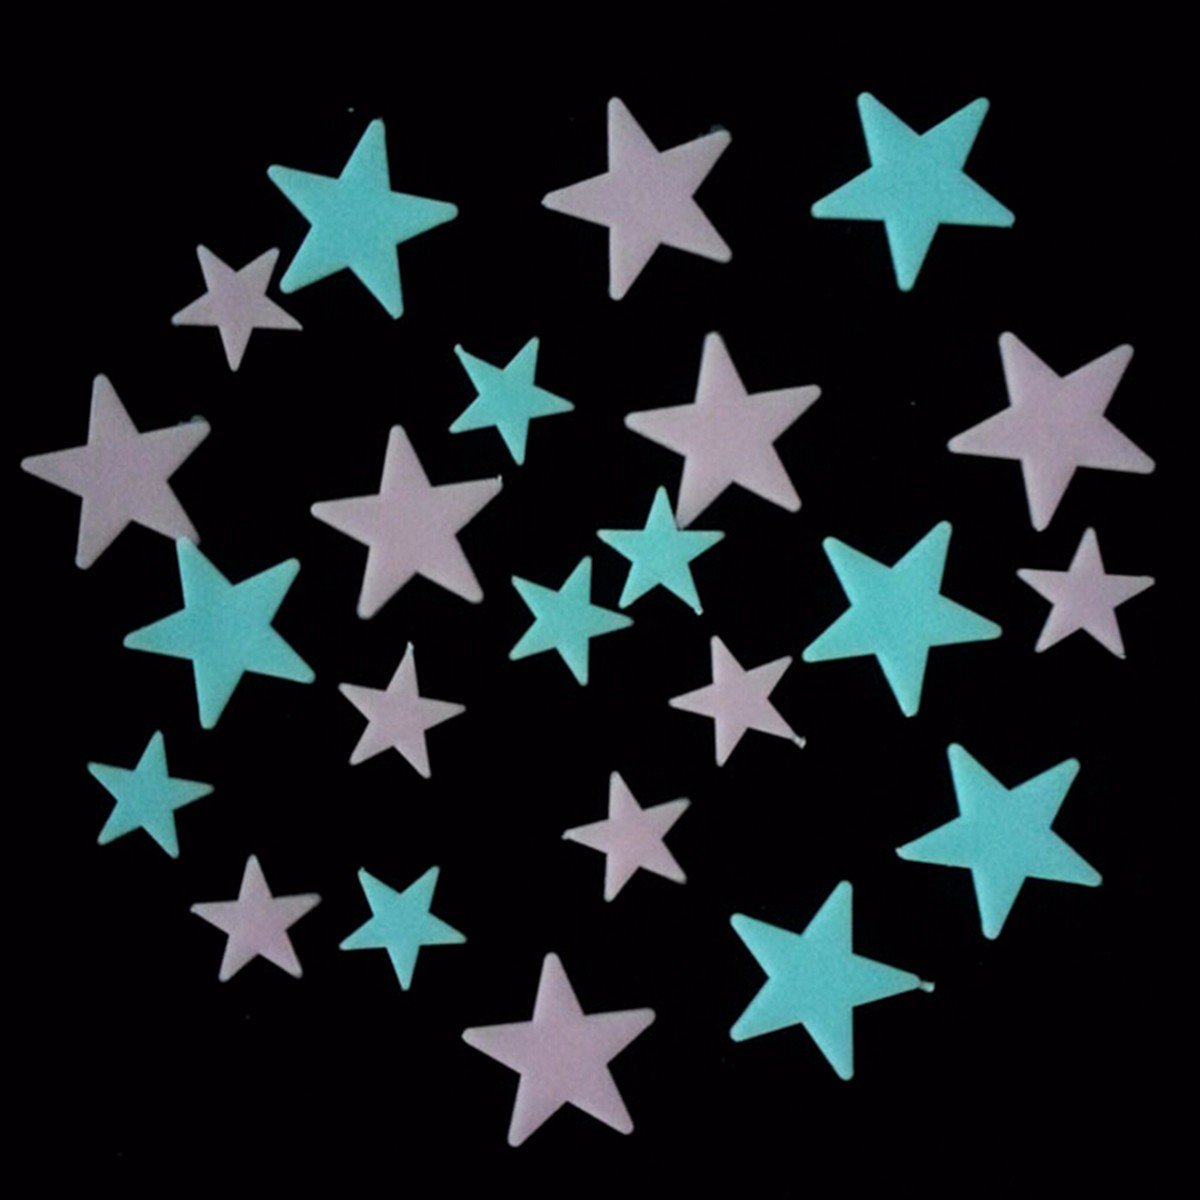 Stars Room Decor 24pcs Stars Noctilucence Wall Stickers Colorful Fluorescent Home Kid Room Decor Gift